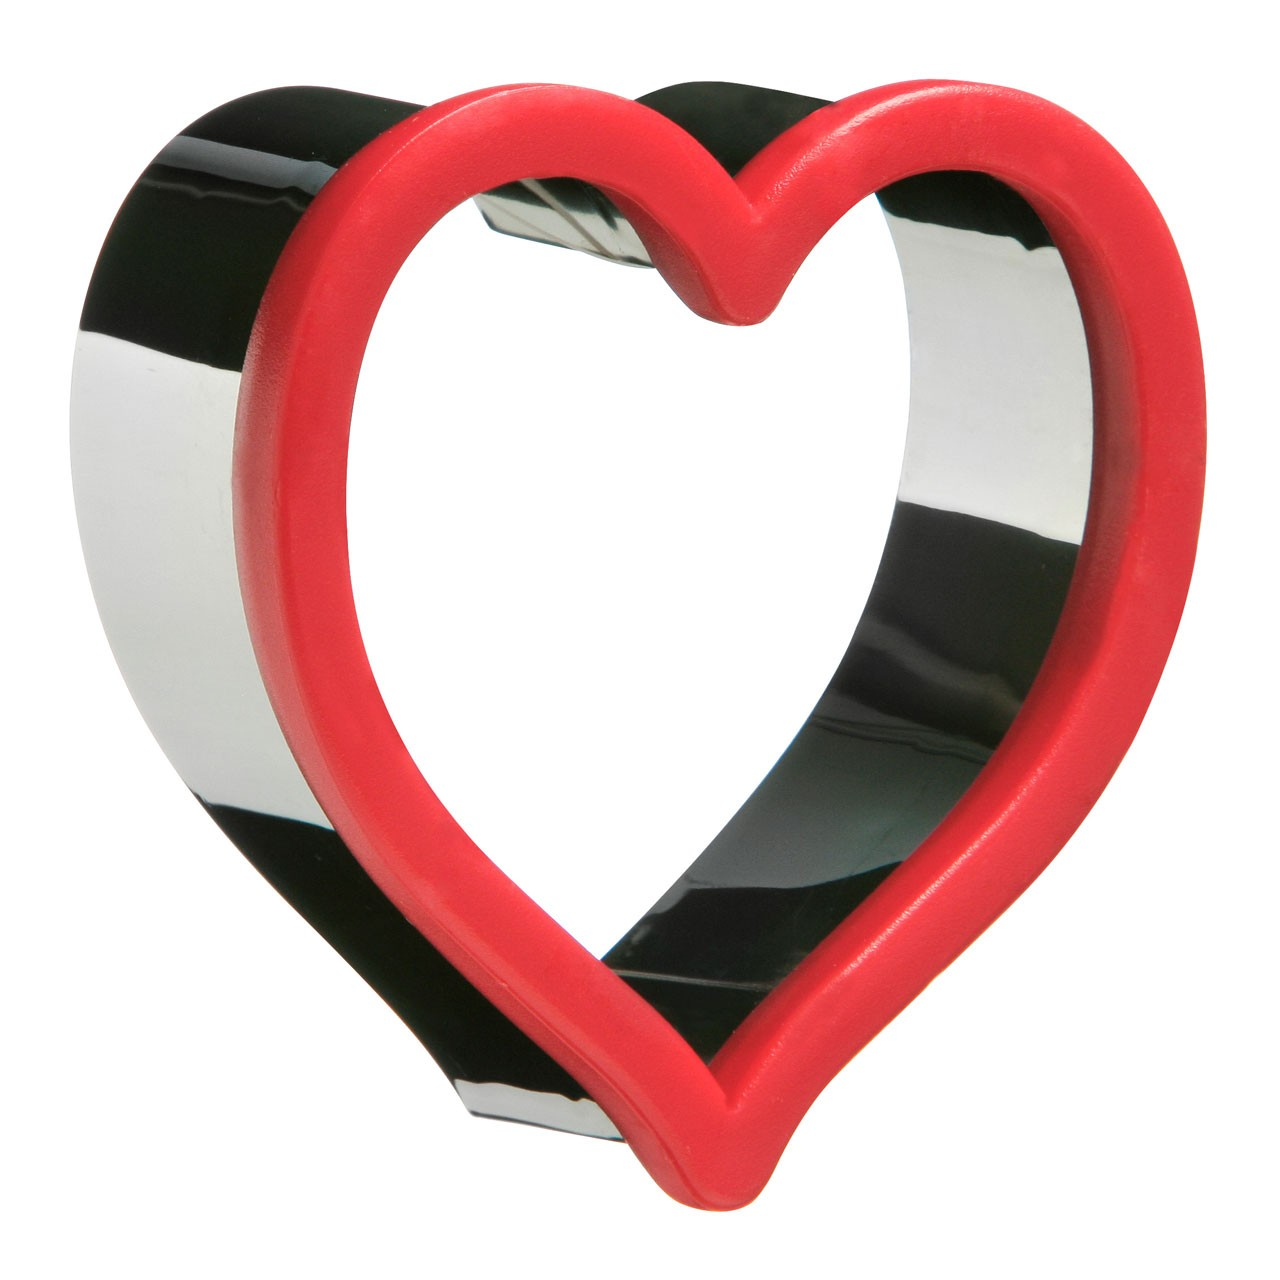 Heart Cookie Cutter - Red